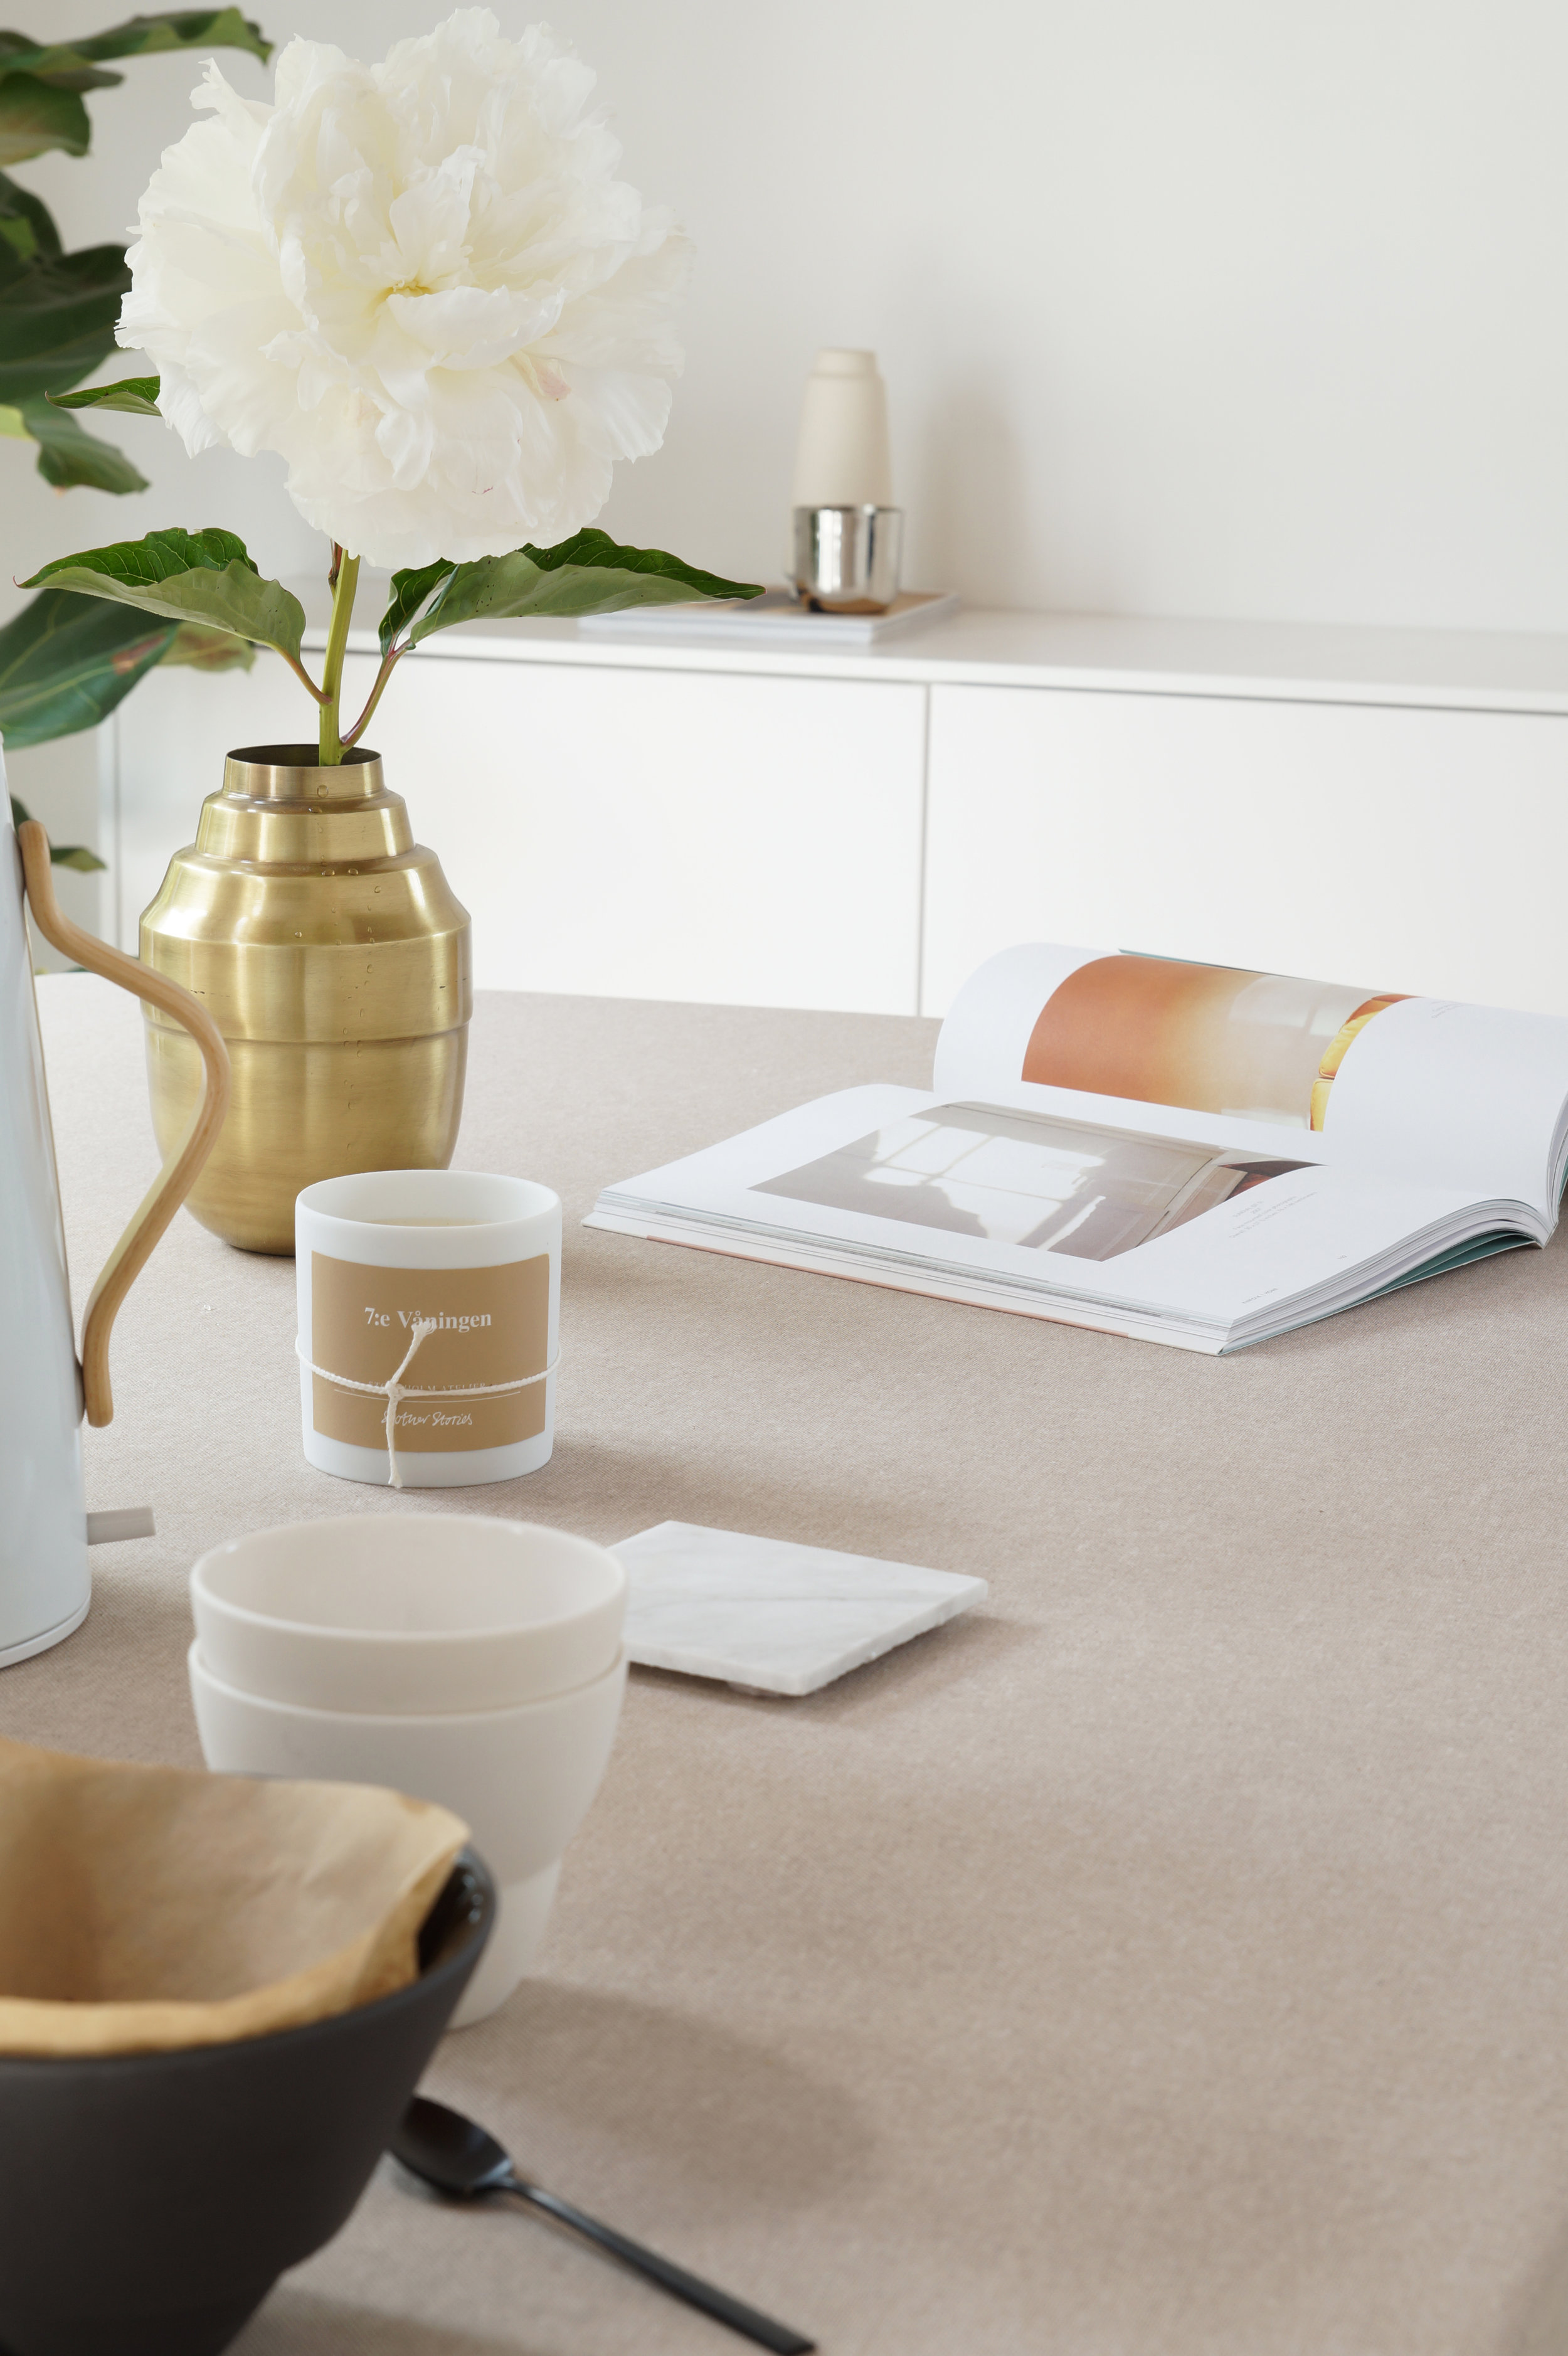 - Make your product stand out in a real home setting. -